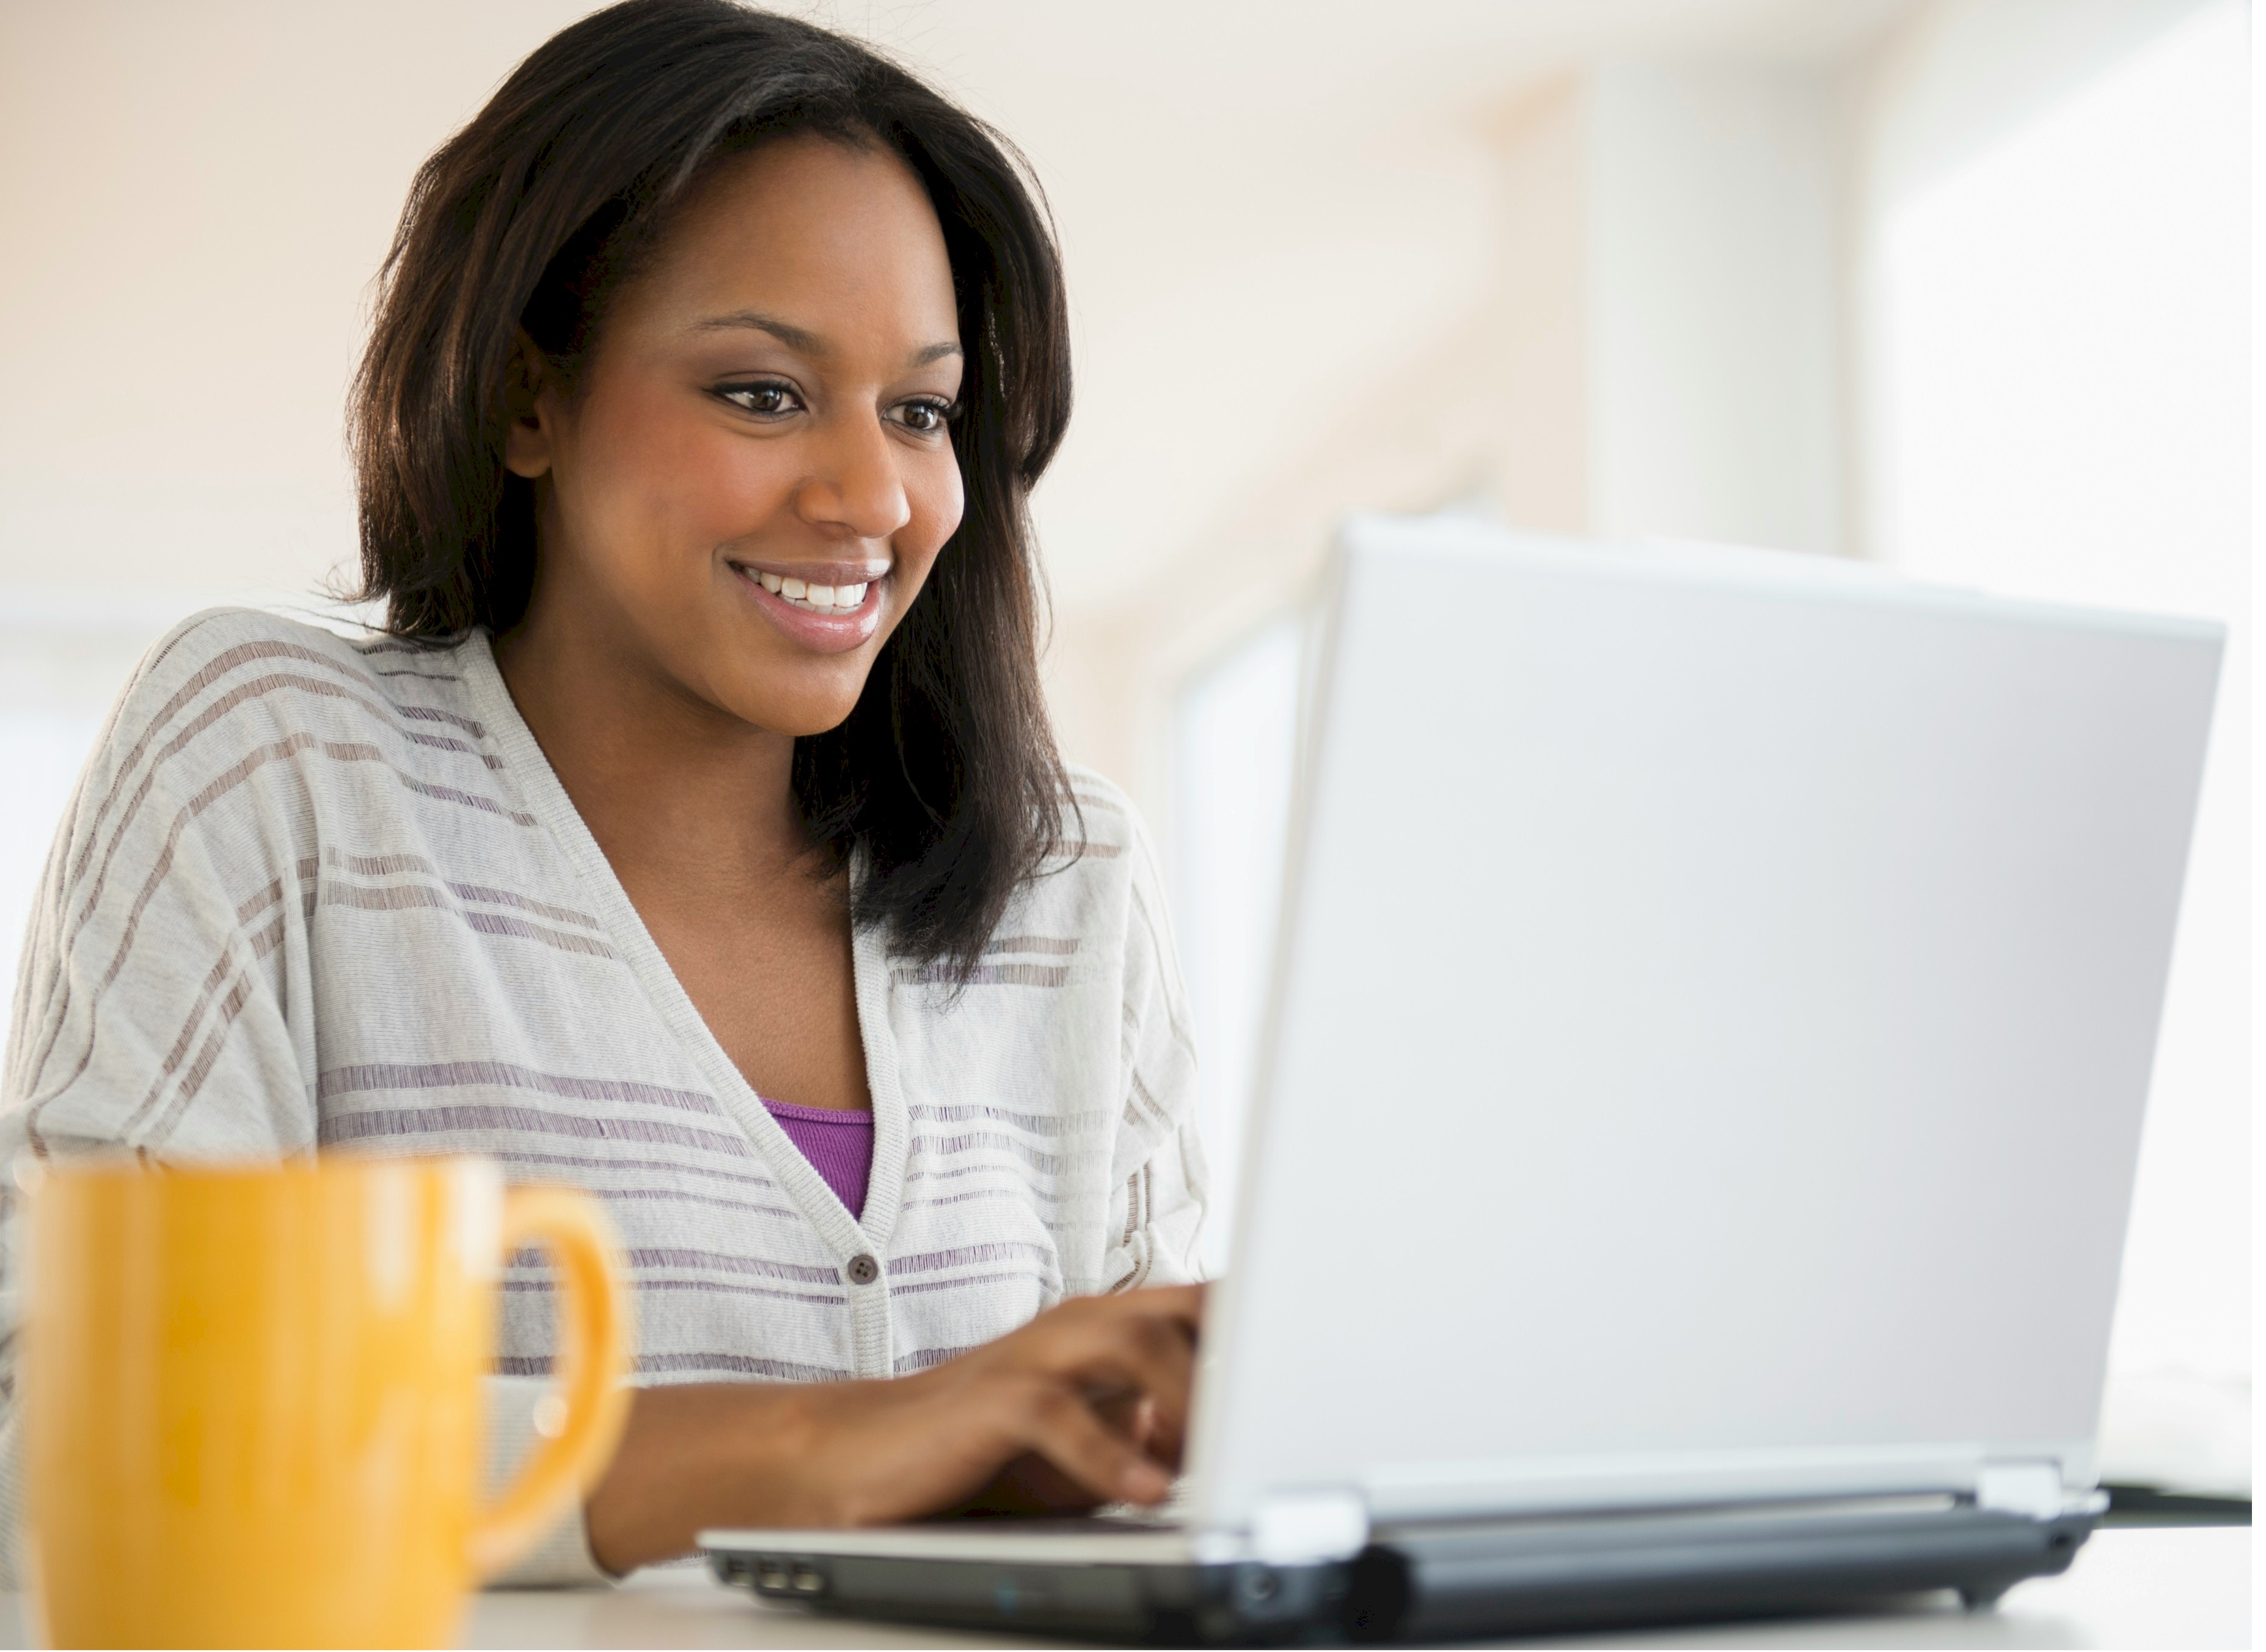 Black woman on laptop using Aspiration software